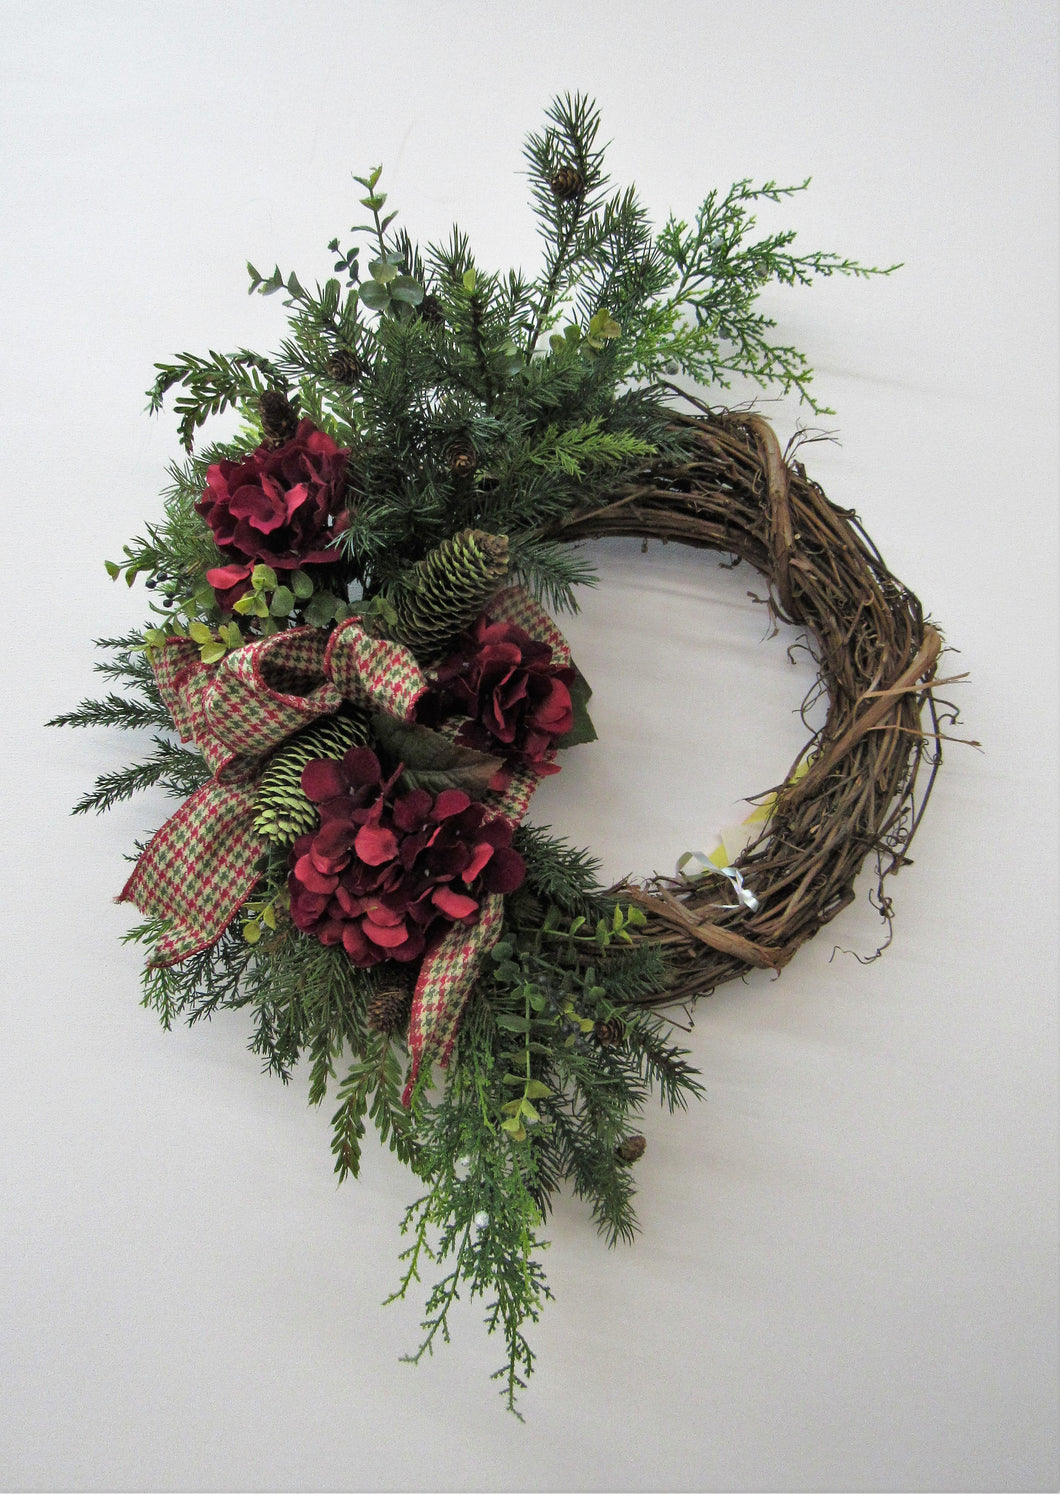 Gallery/Trans40 - April's Garden Wreath